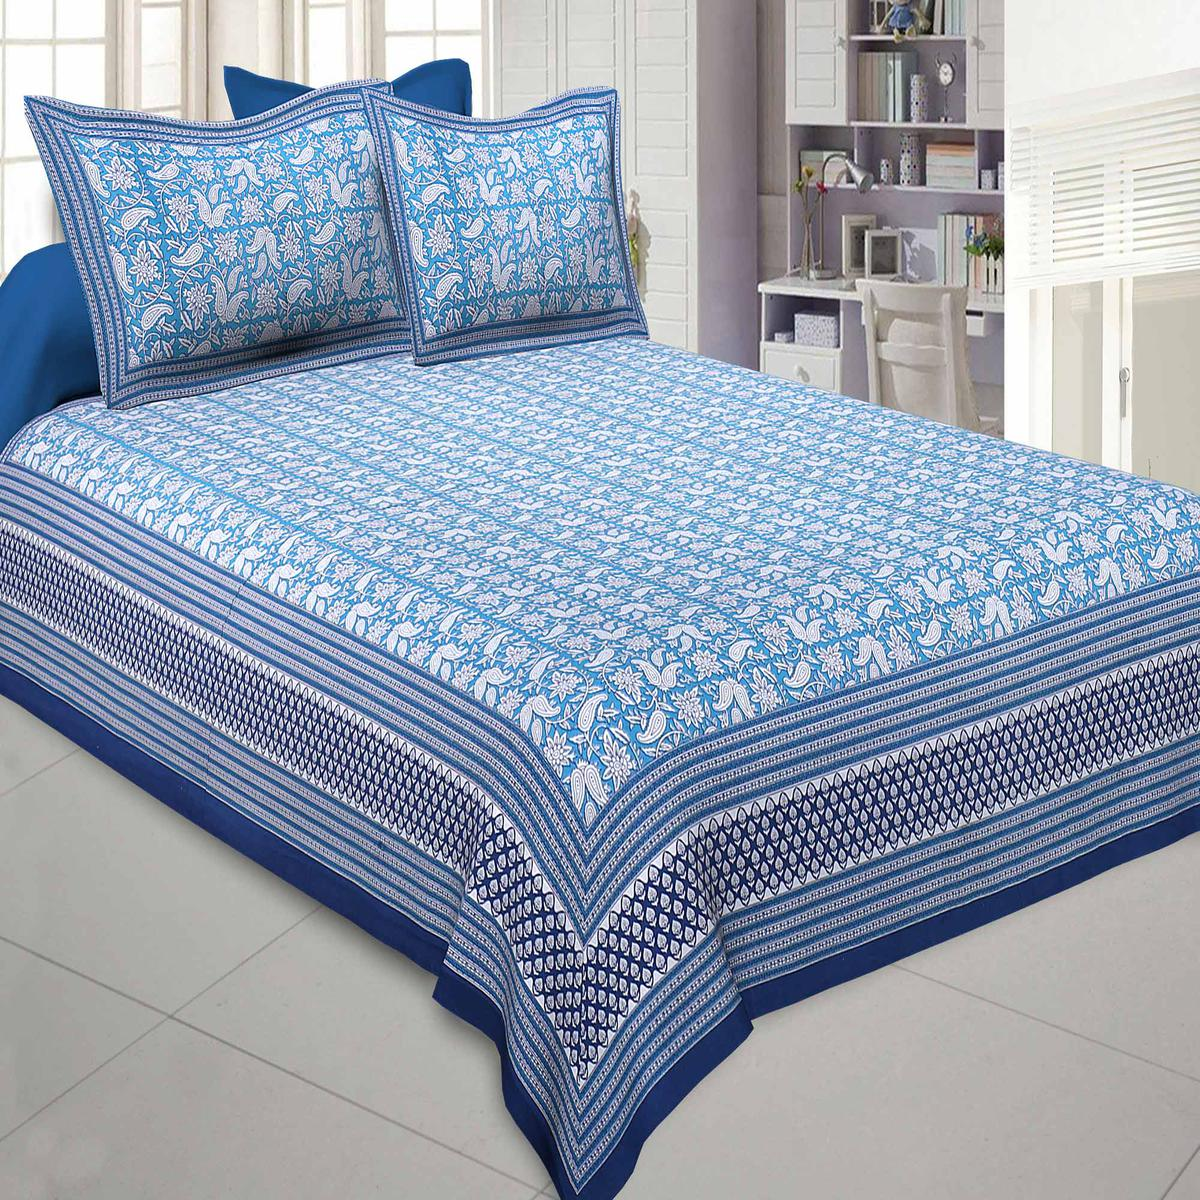 Jaipur Fabric Floret Kingdom Blue Double Bedsheet With 2 Pillow Covers